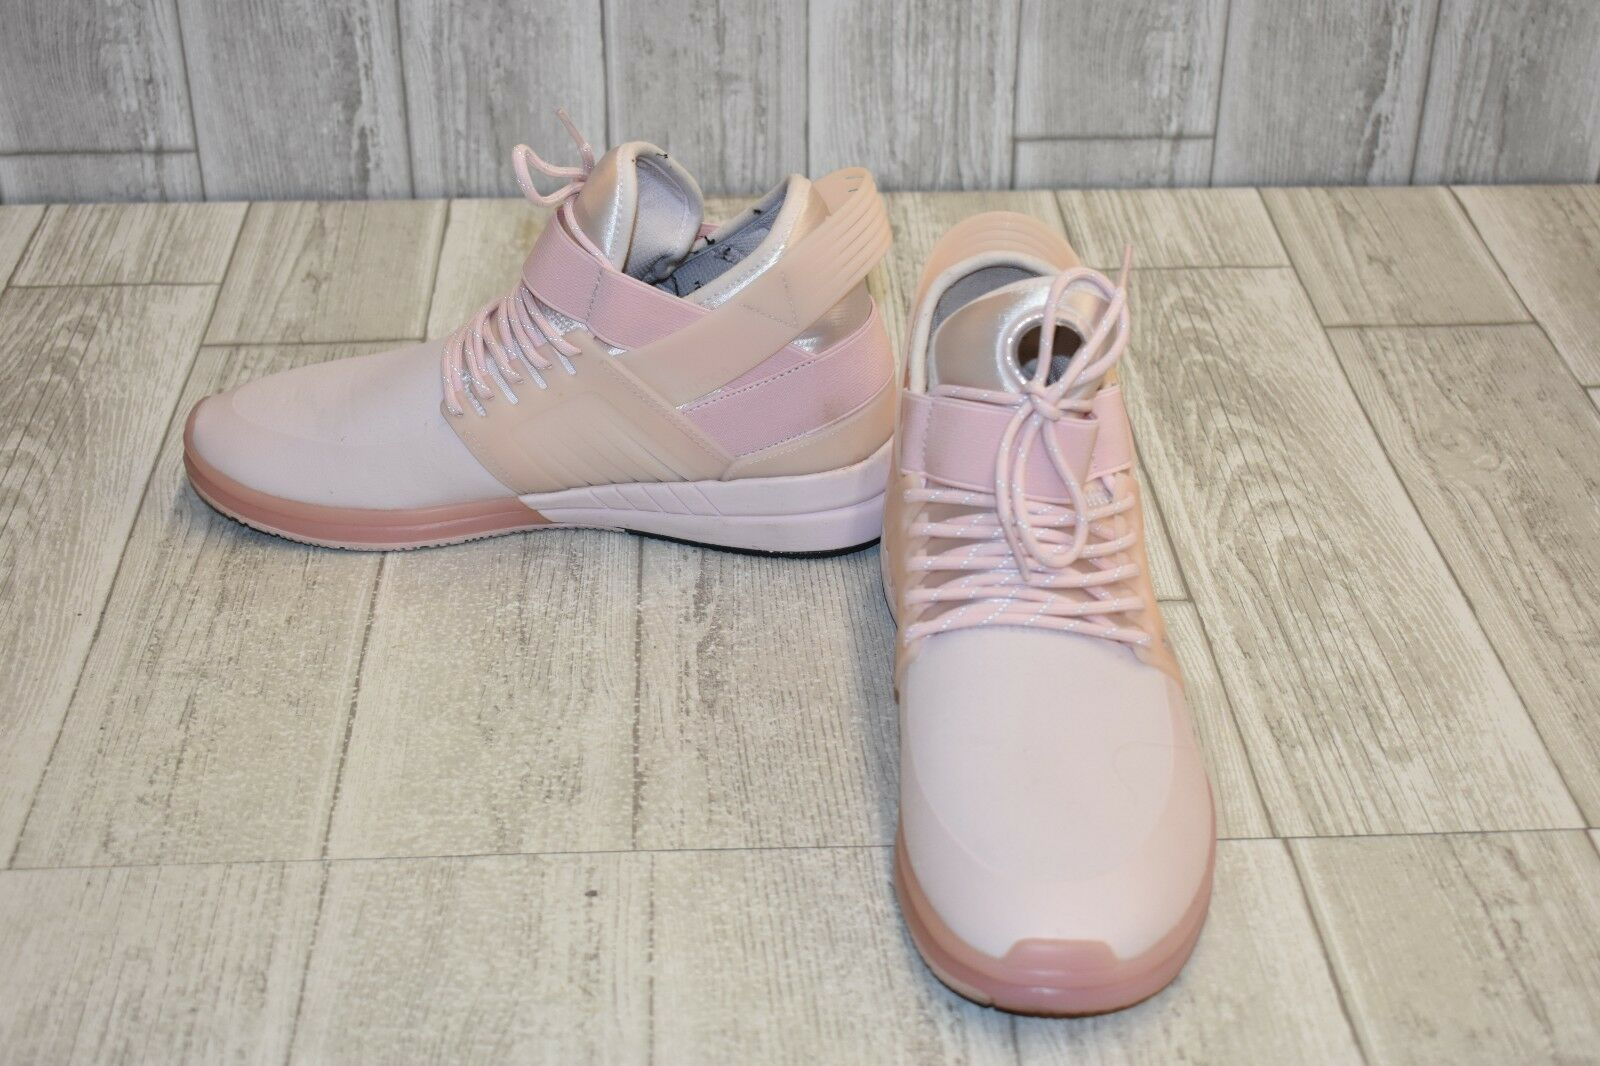 Supra Skytop V Athletic shoes - Men's Size 9.5 - Light Pink